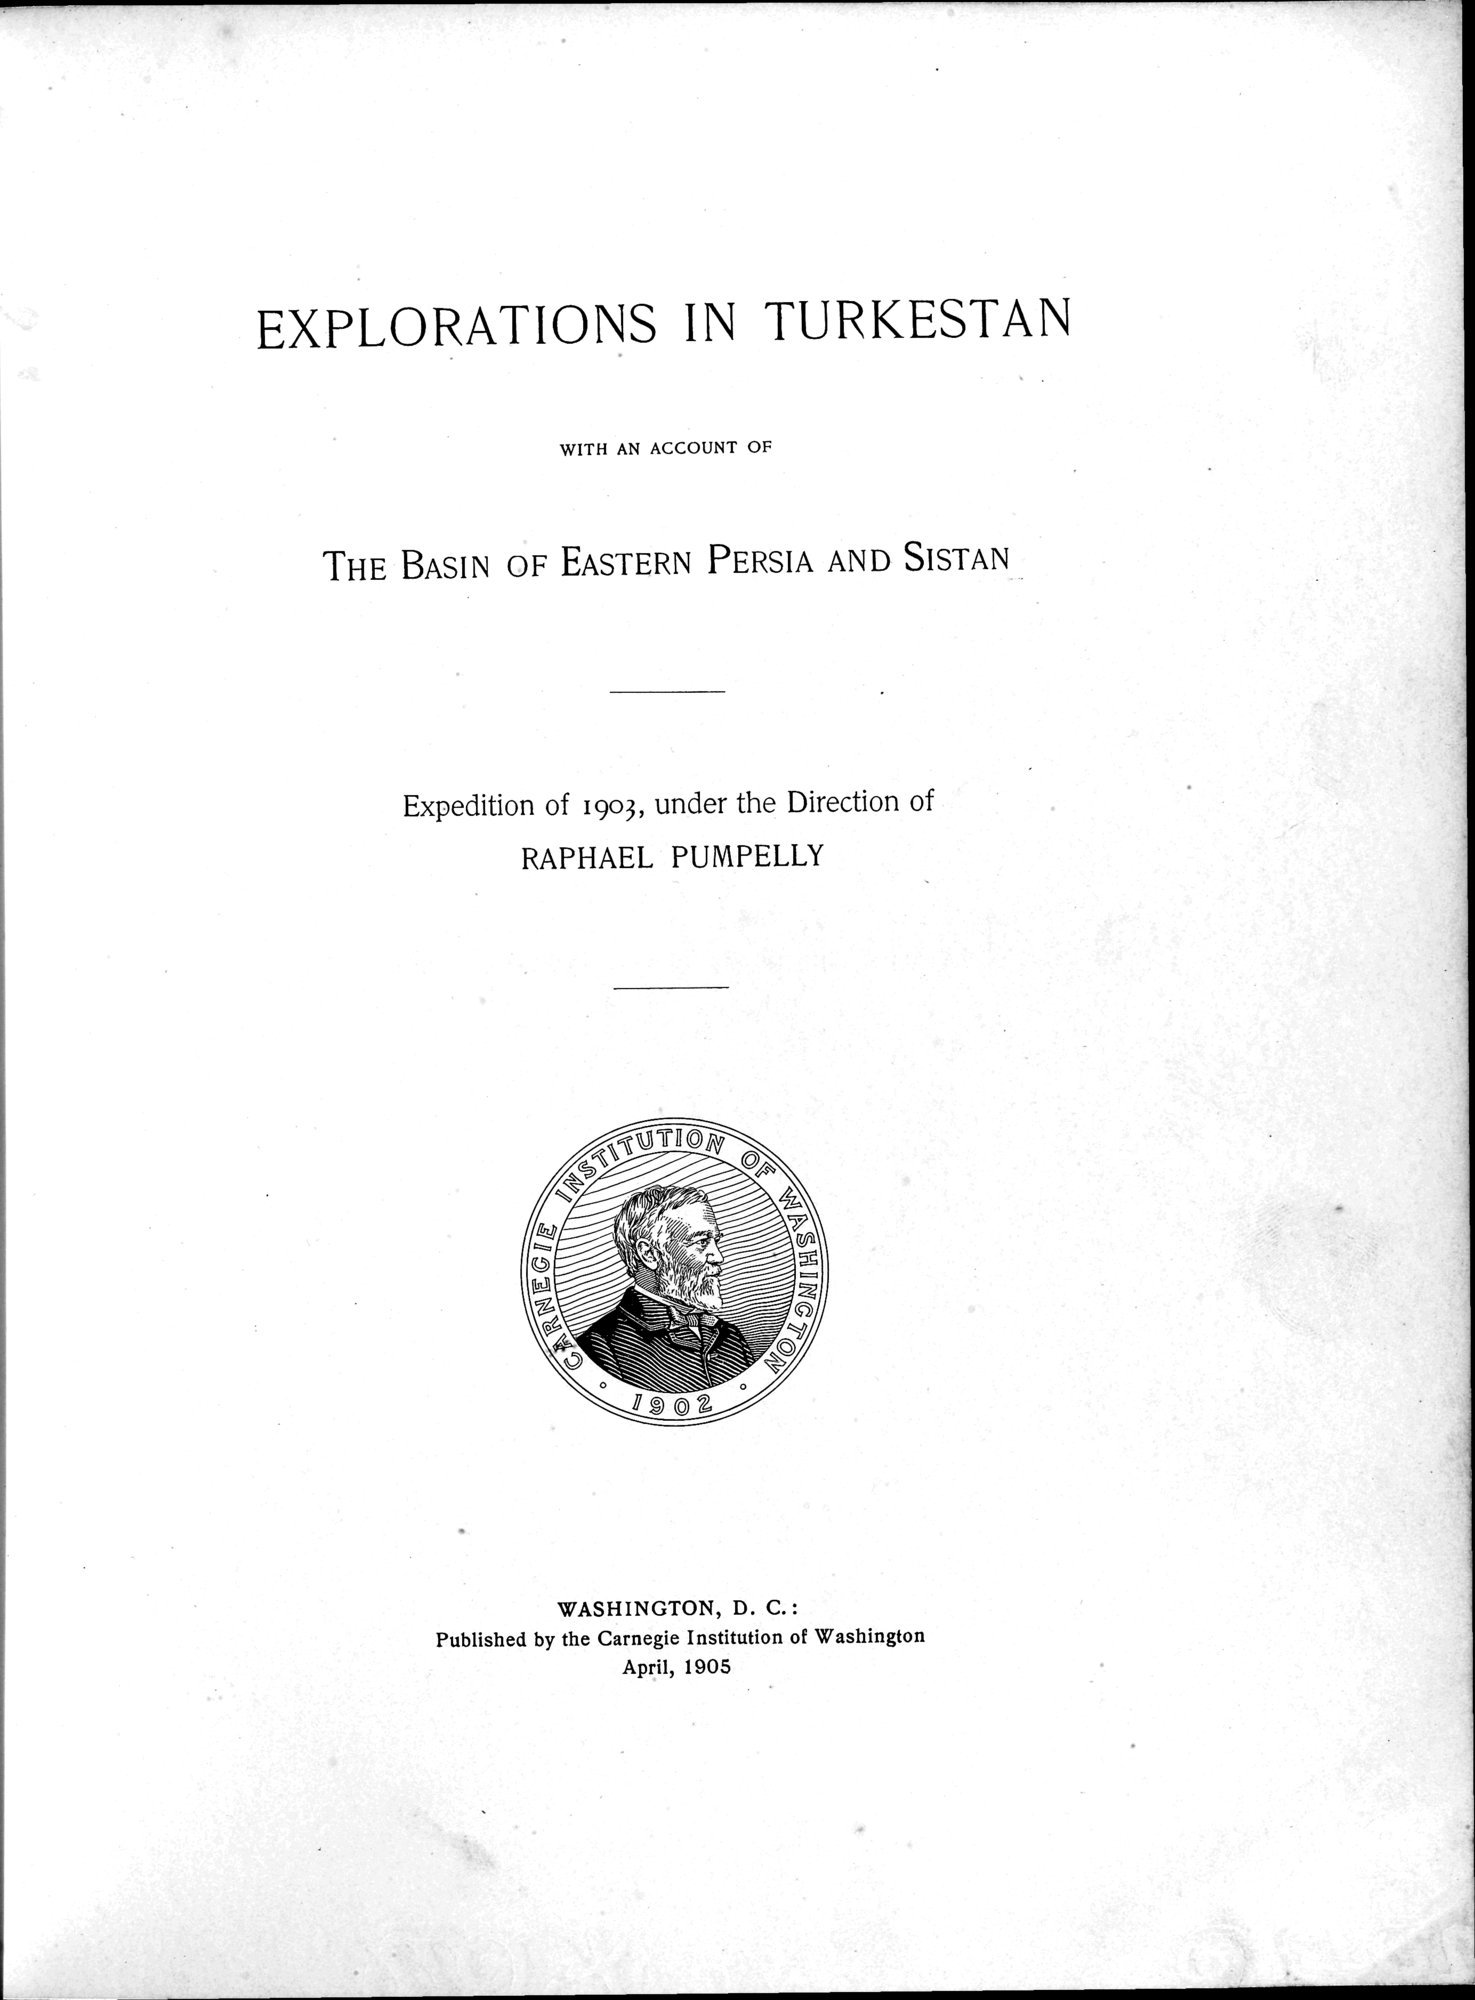 Explorations in Turkestan 1903 : vol.1 / Page 11 (Grayscale High Resolution Image)